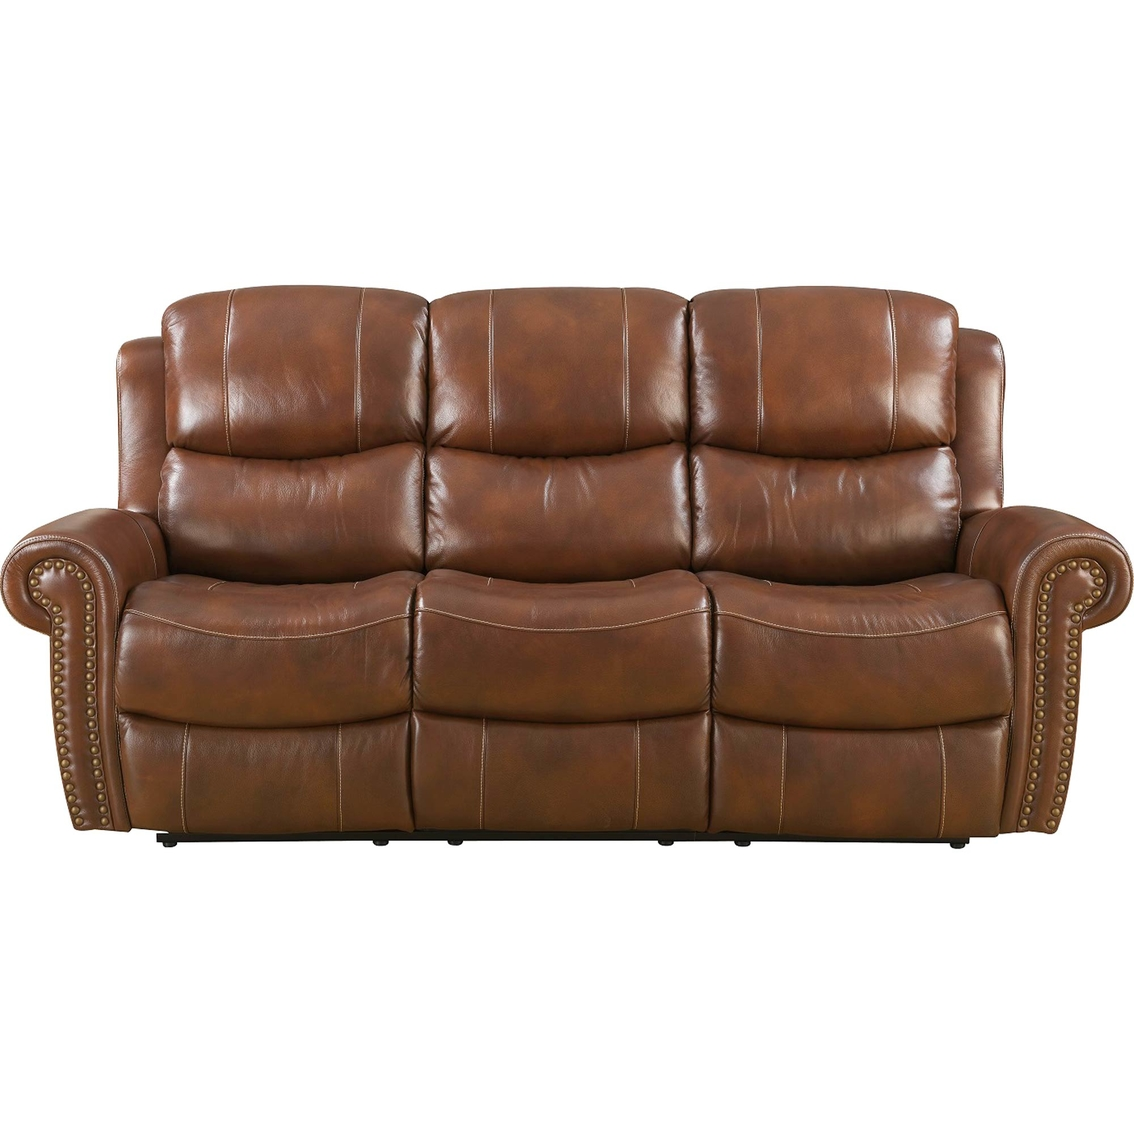 Klaussner Alomar Leather Reclining Sofa Sofas Couches